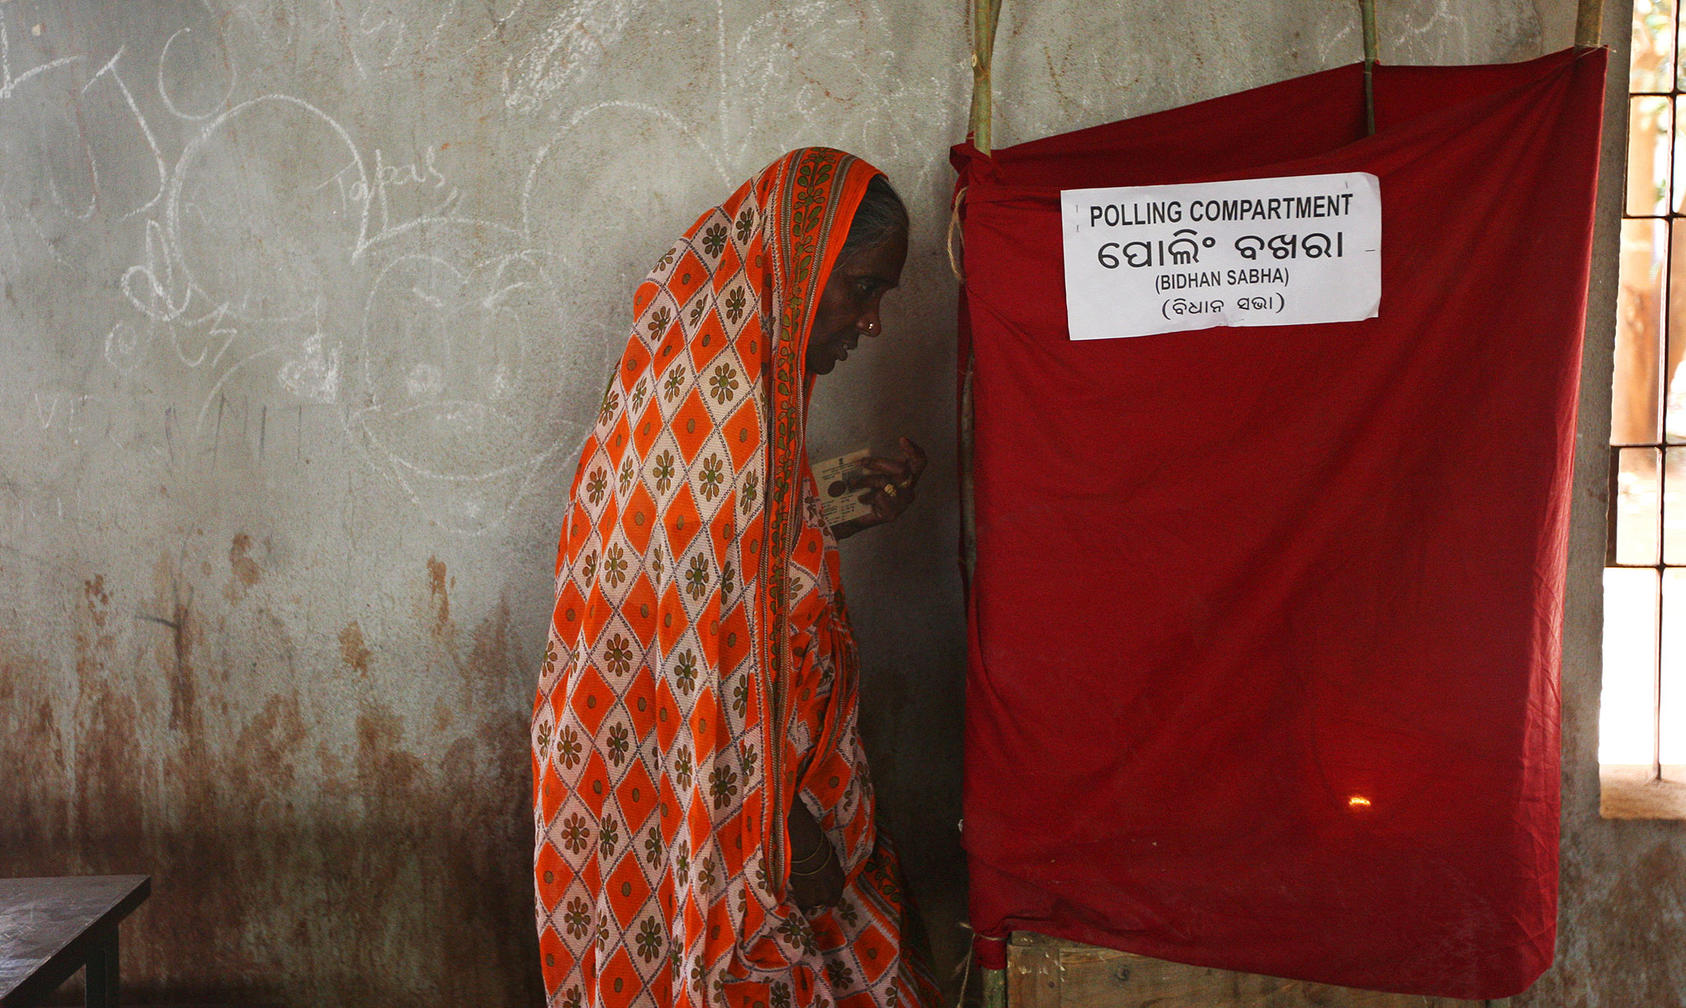 A woman enters a booth to mark her ballot at a polling station in the city of Bhubaneswar, in the state of Orissa